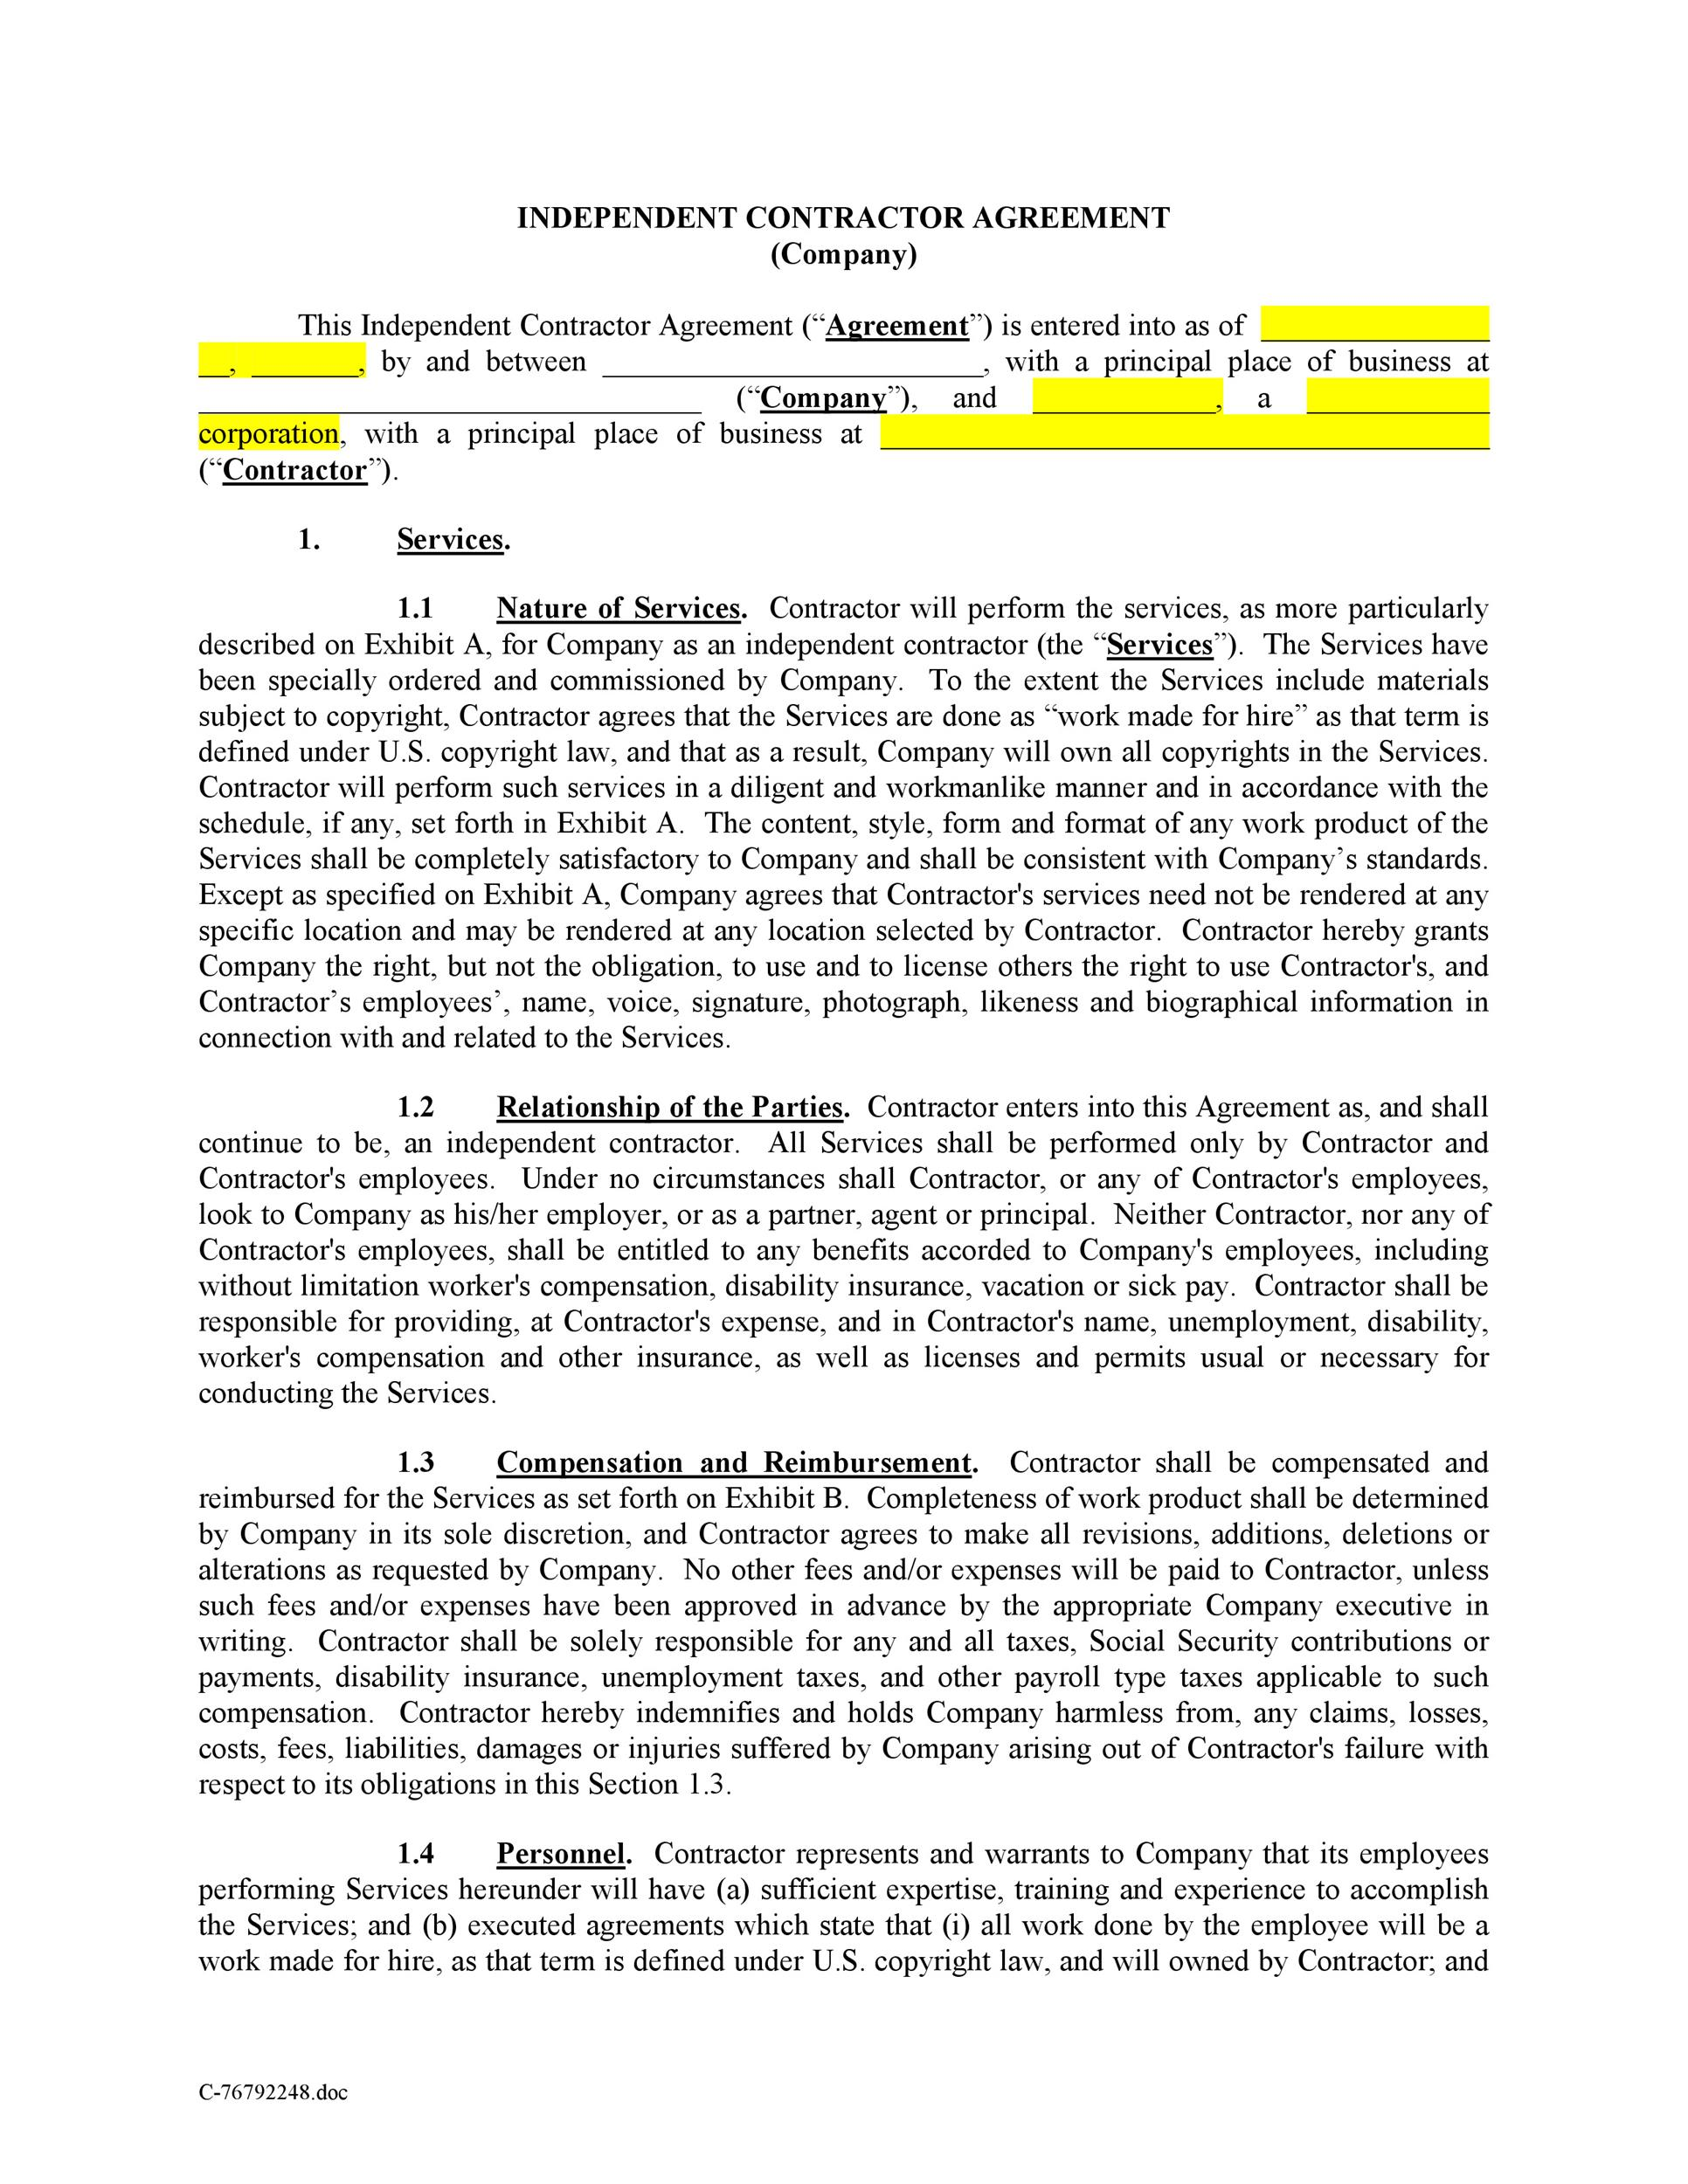 Free independent contractor agreement 01